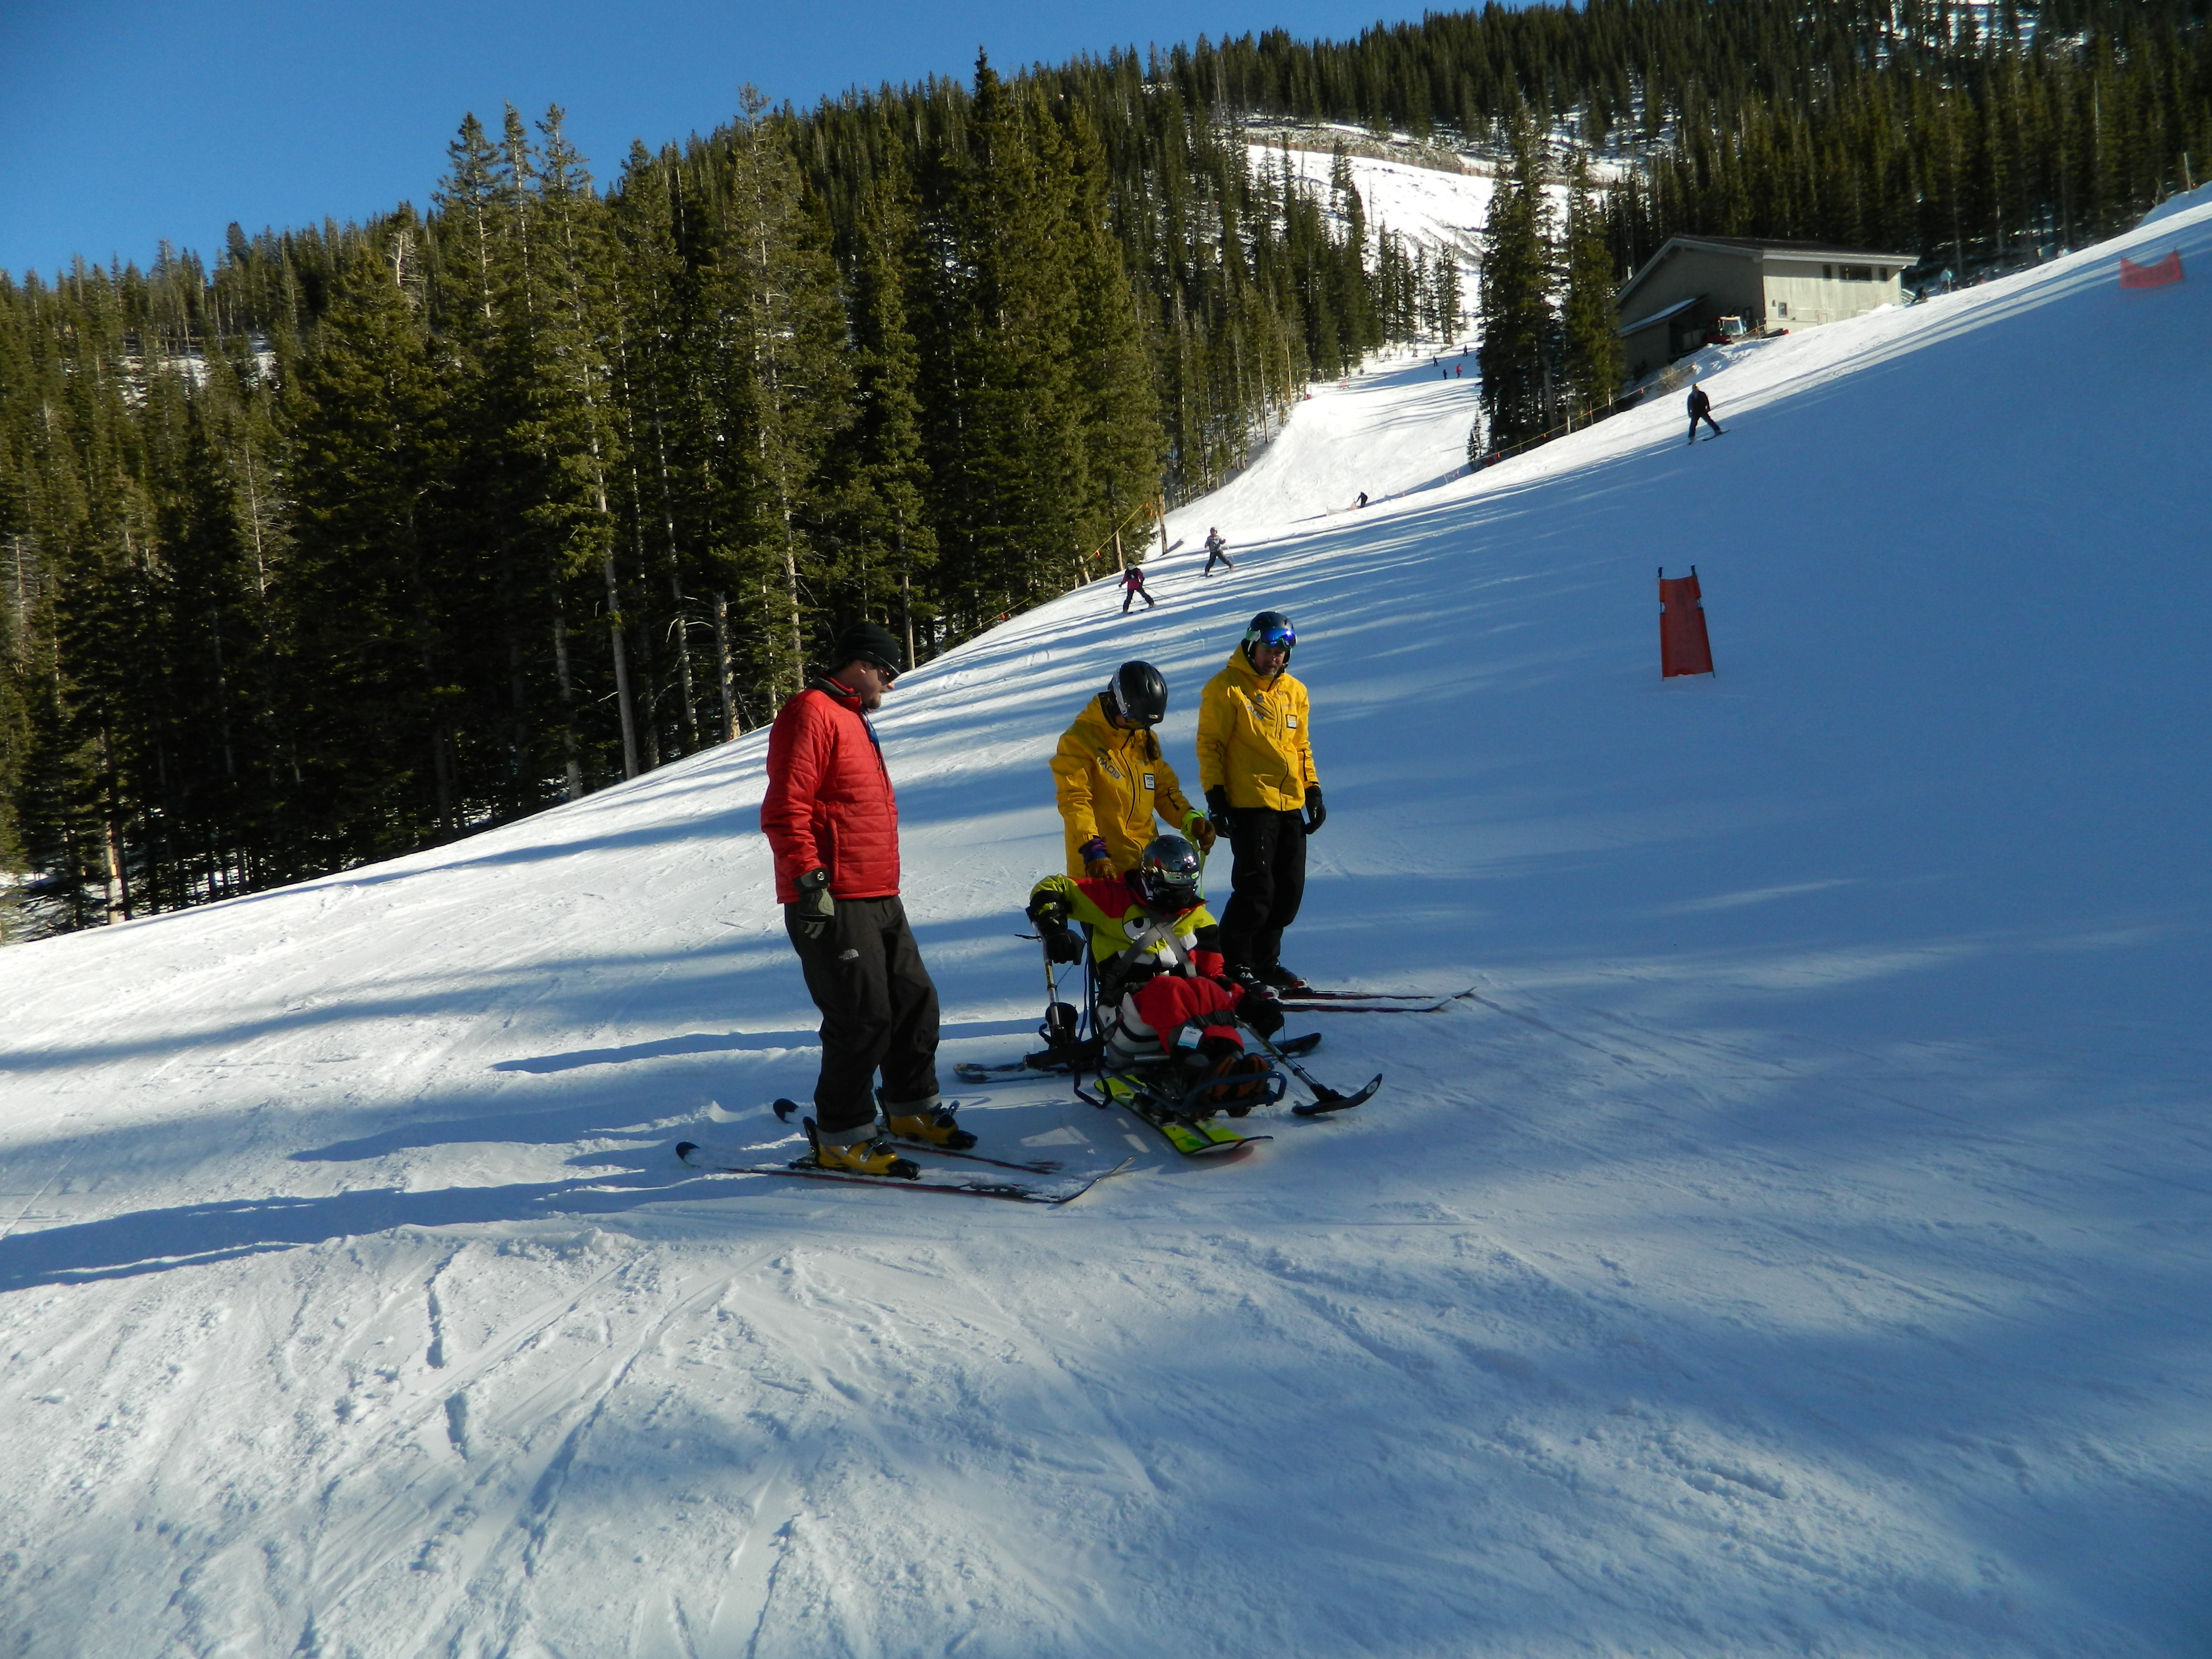 Two Taos Ski Valley instructors in yellow coats and a third skier assist a disabled skier in a ski chair on the slopes.